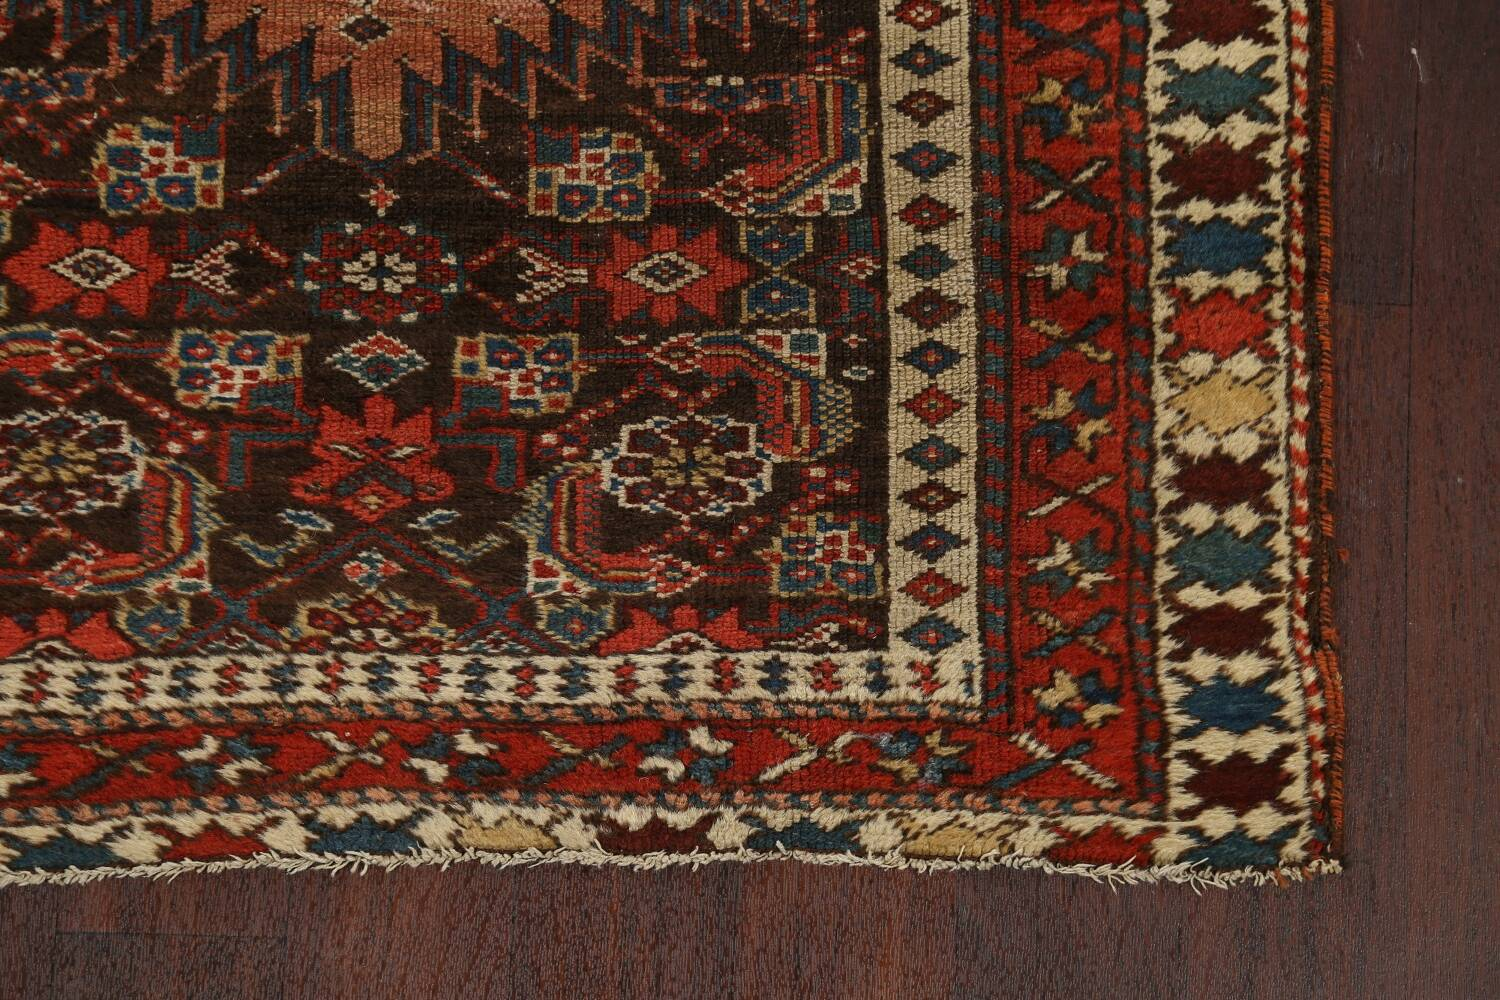 Pre-1900 Antique Vegetable Dye Malayer Persian Runner Rug 4x10 image 5